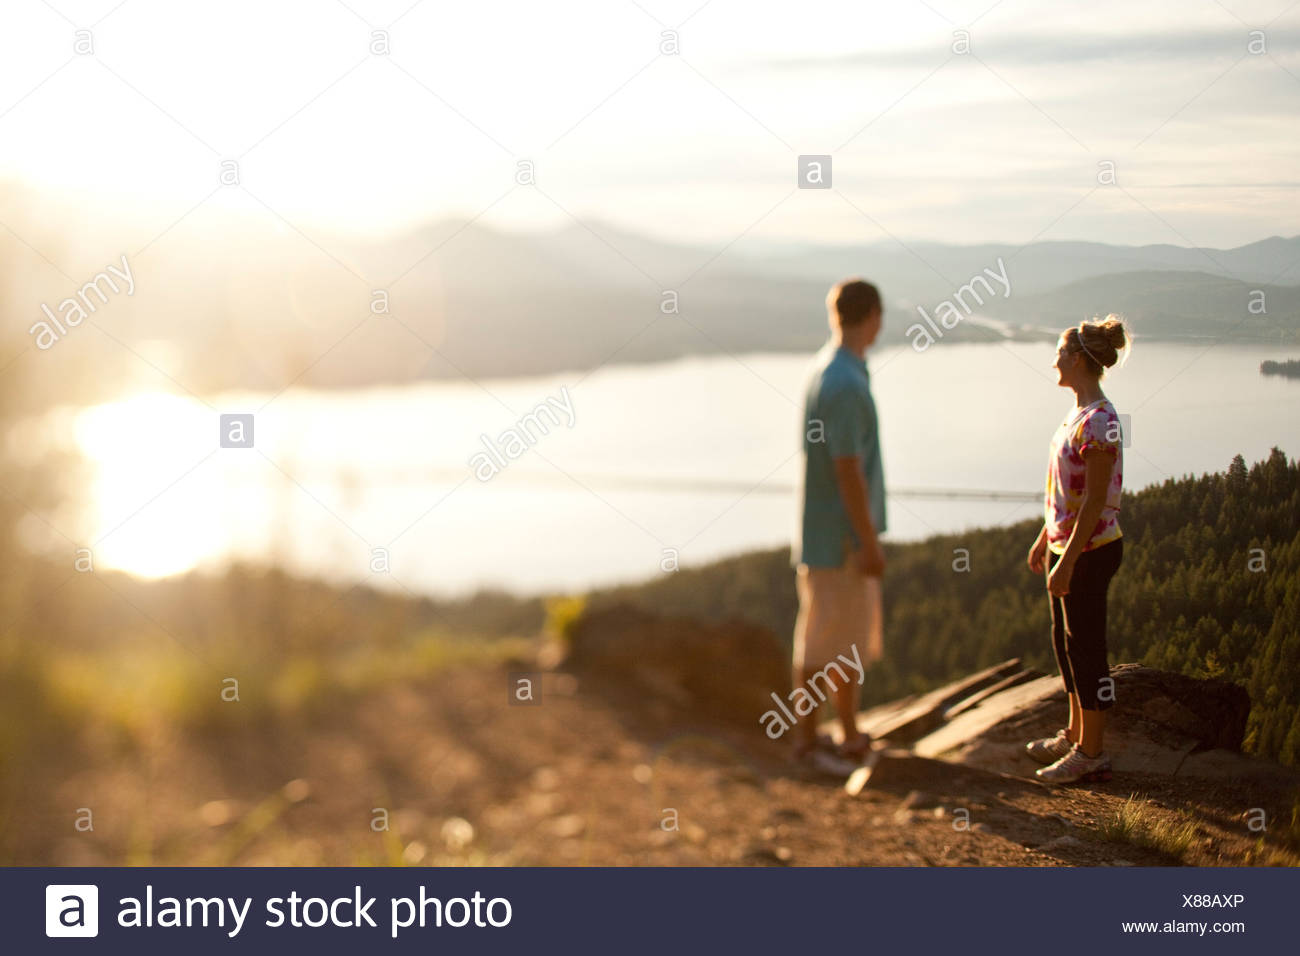 Two young adults talk at the edge of a cliff enjoying the view of the lake. - Stock Image